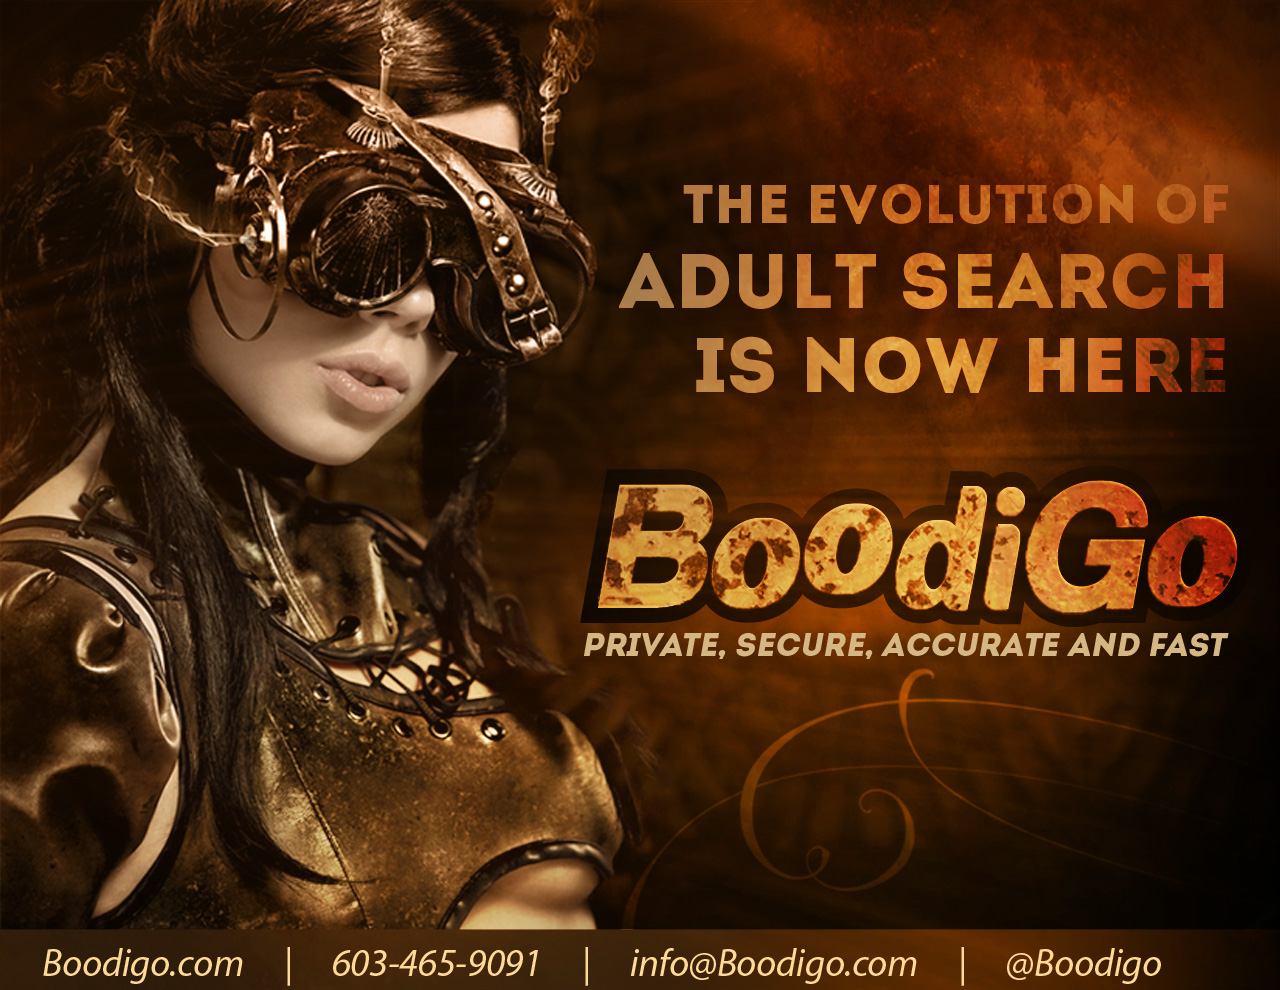 Boodigo Safe Adult Search